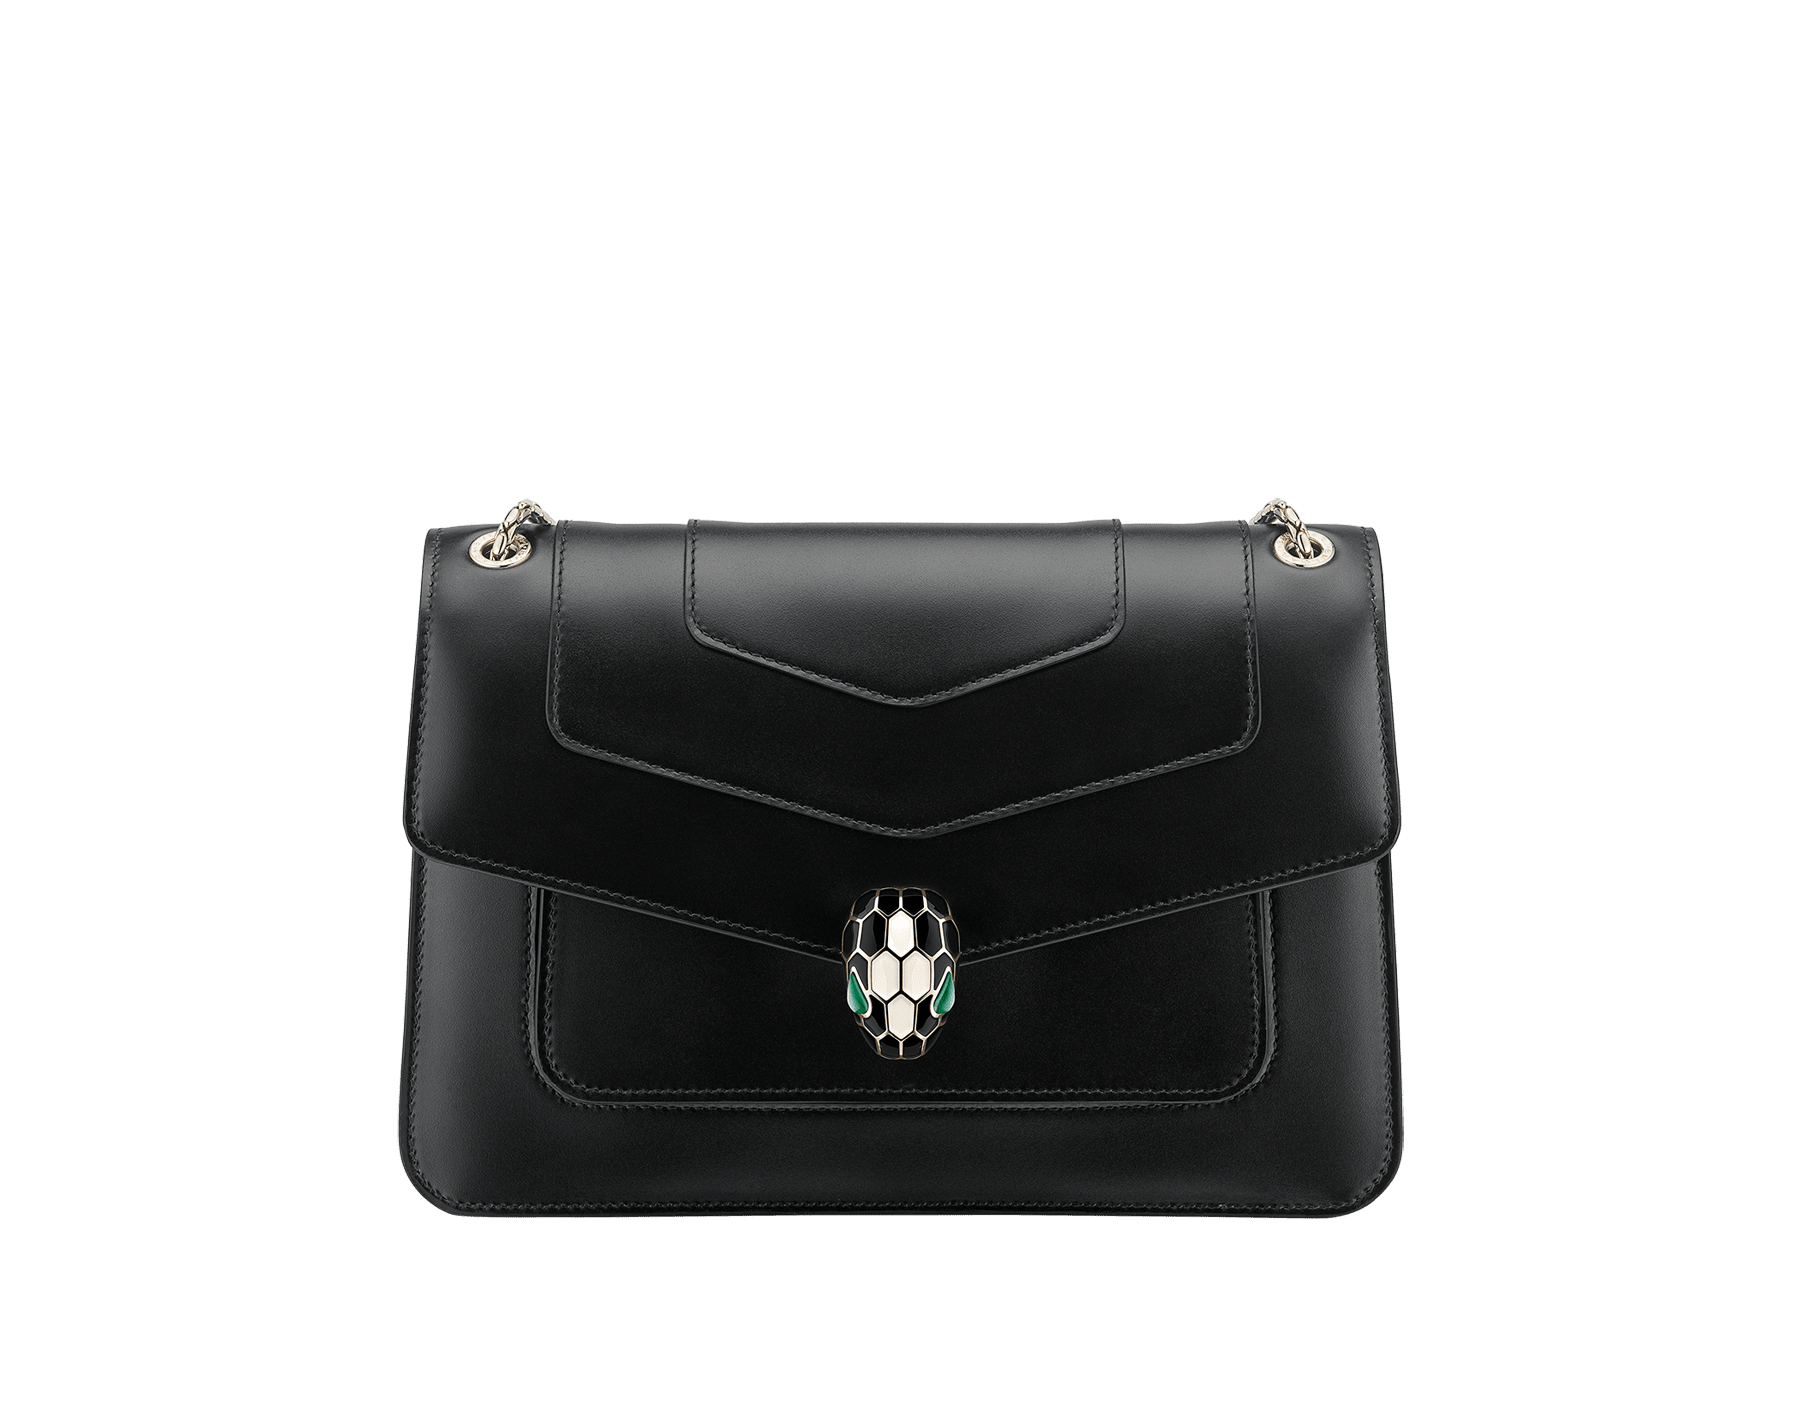 """""""Serpenti Forever"""" shoulder bag in black calf leather. Iconic snakehead closure in light gold-plated brass enhanced with black and white agate enamel and green malachite eyes. 1077-CL image 1"""